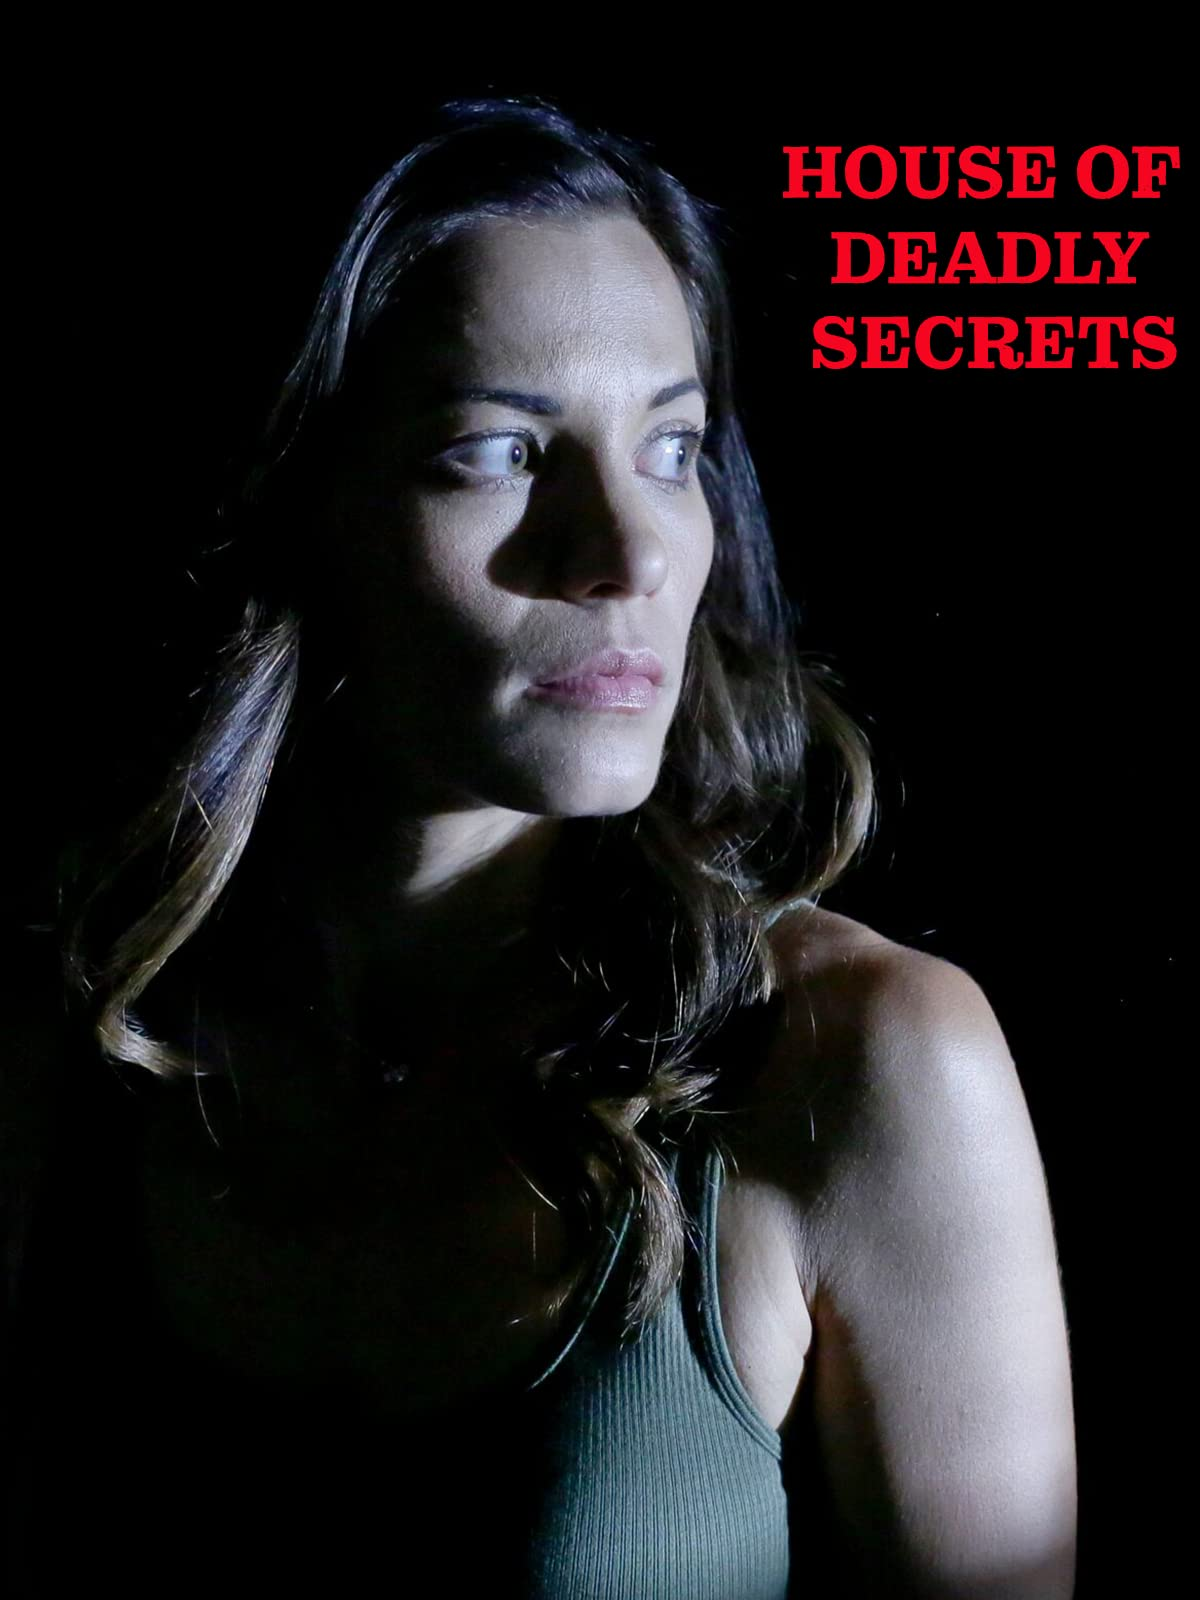 House of Deadly Secrets